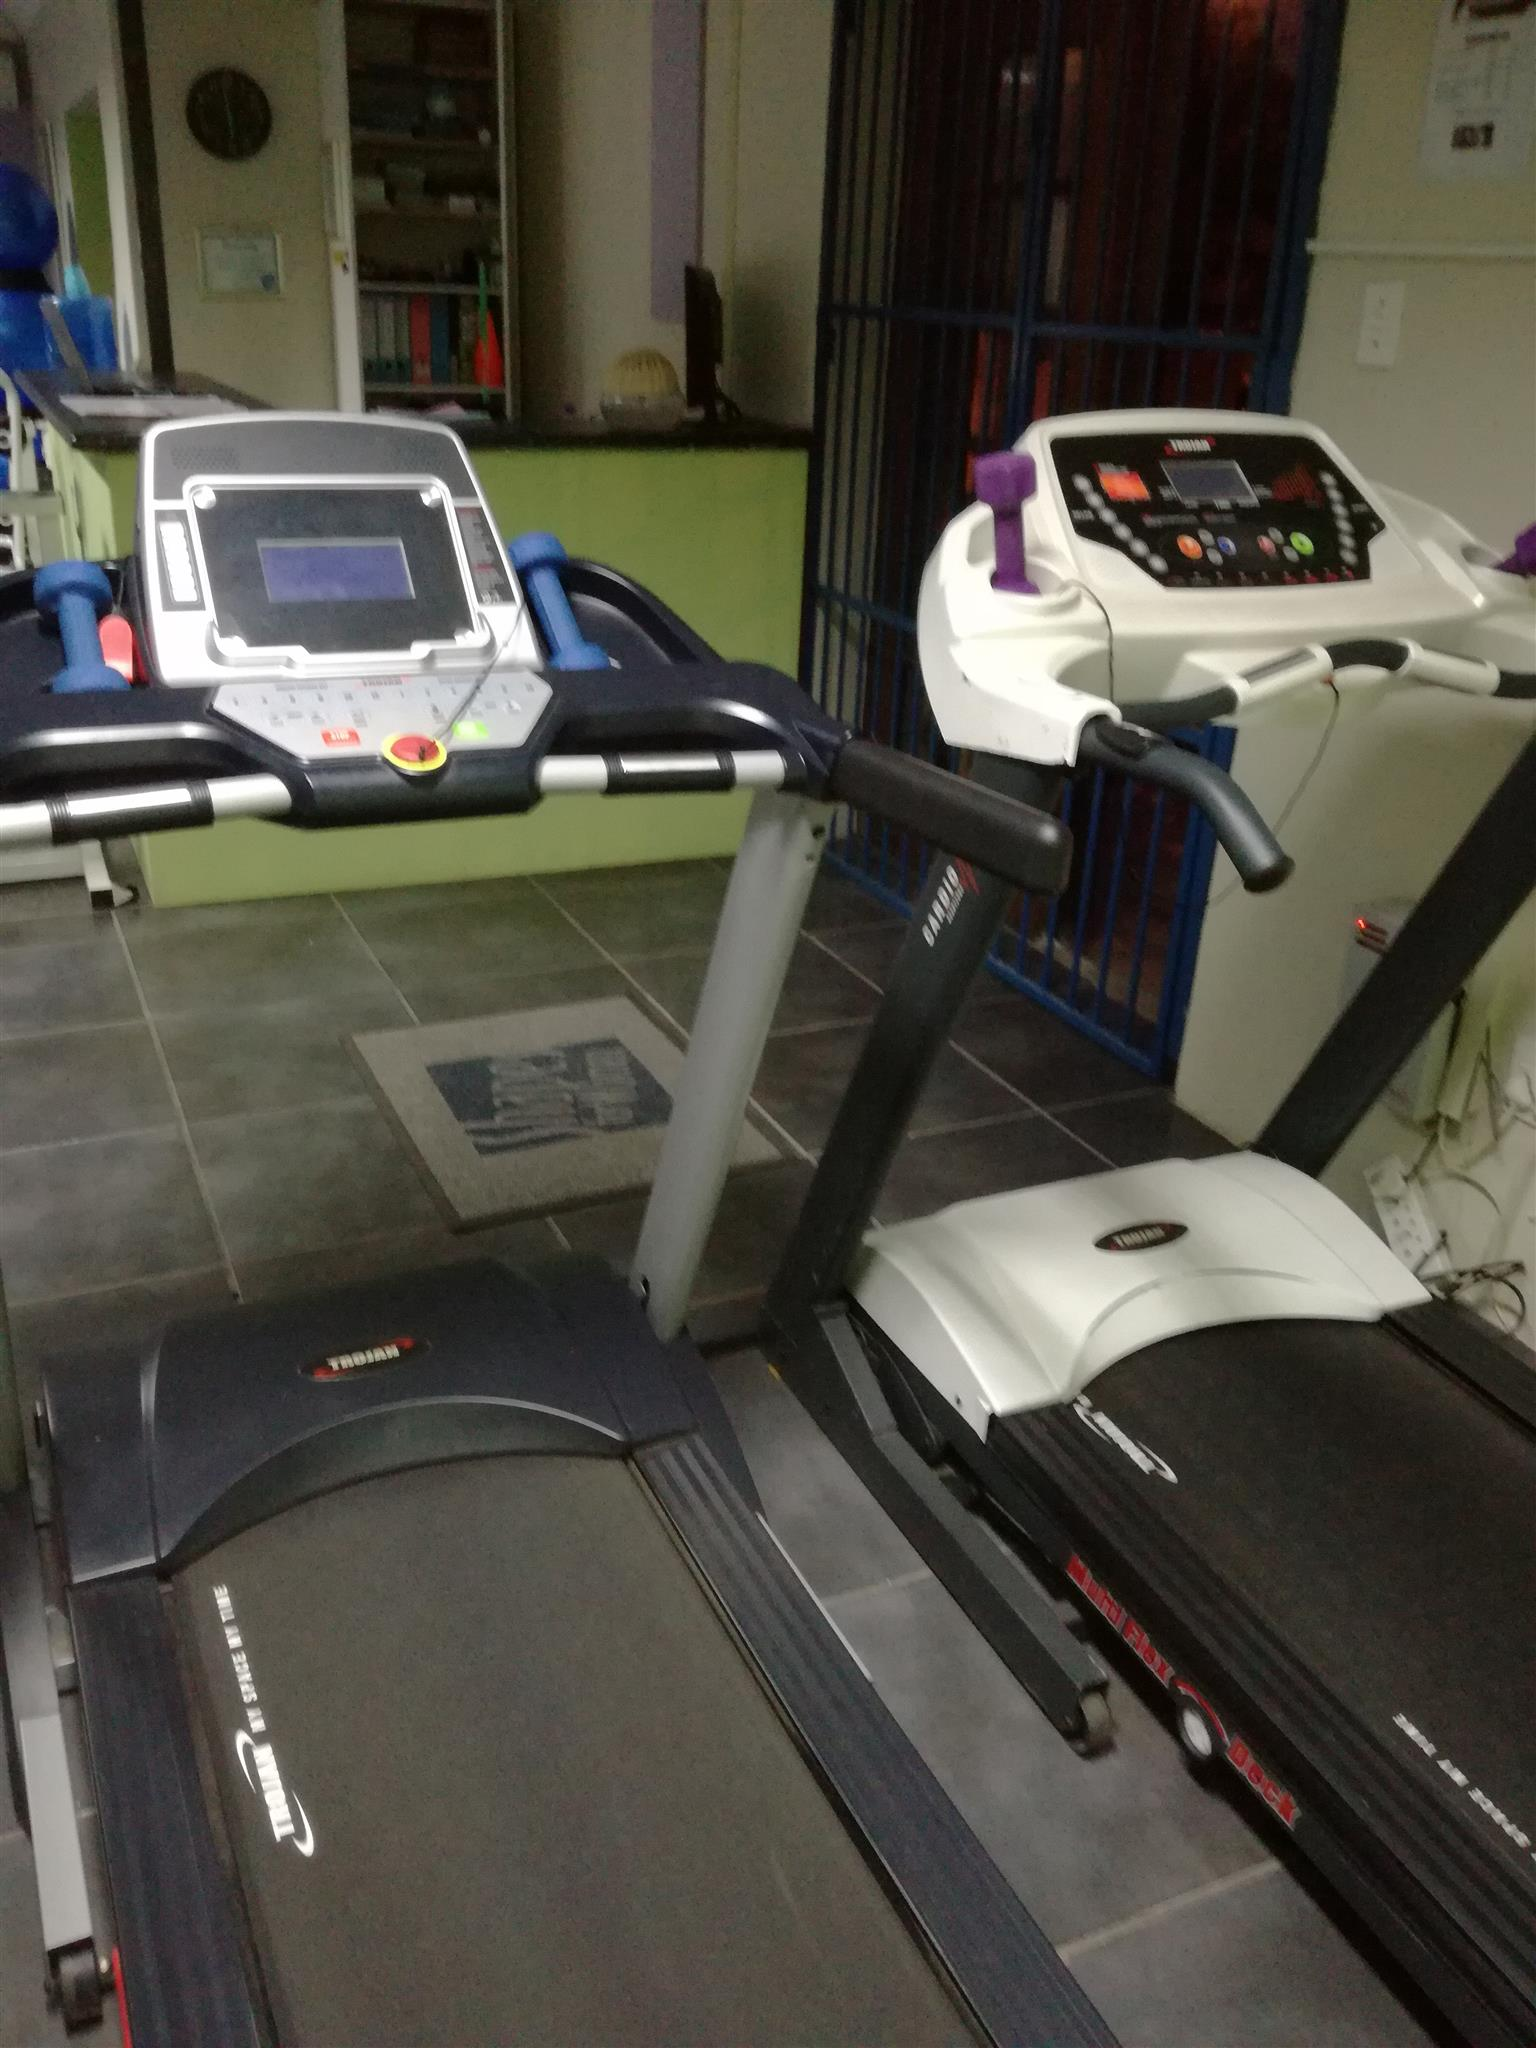 Small ladies gym for sale